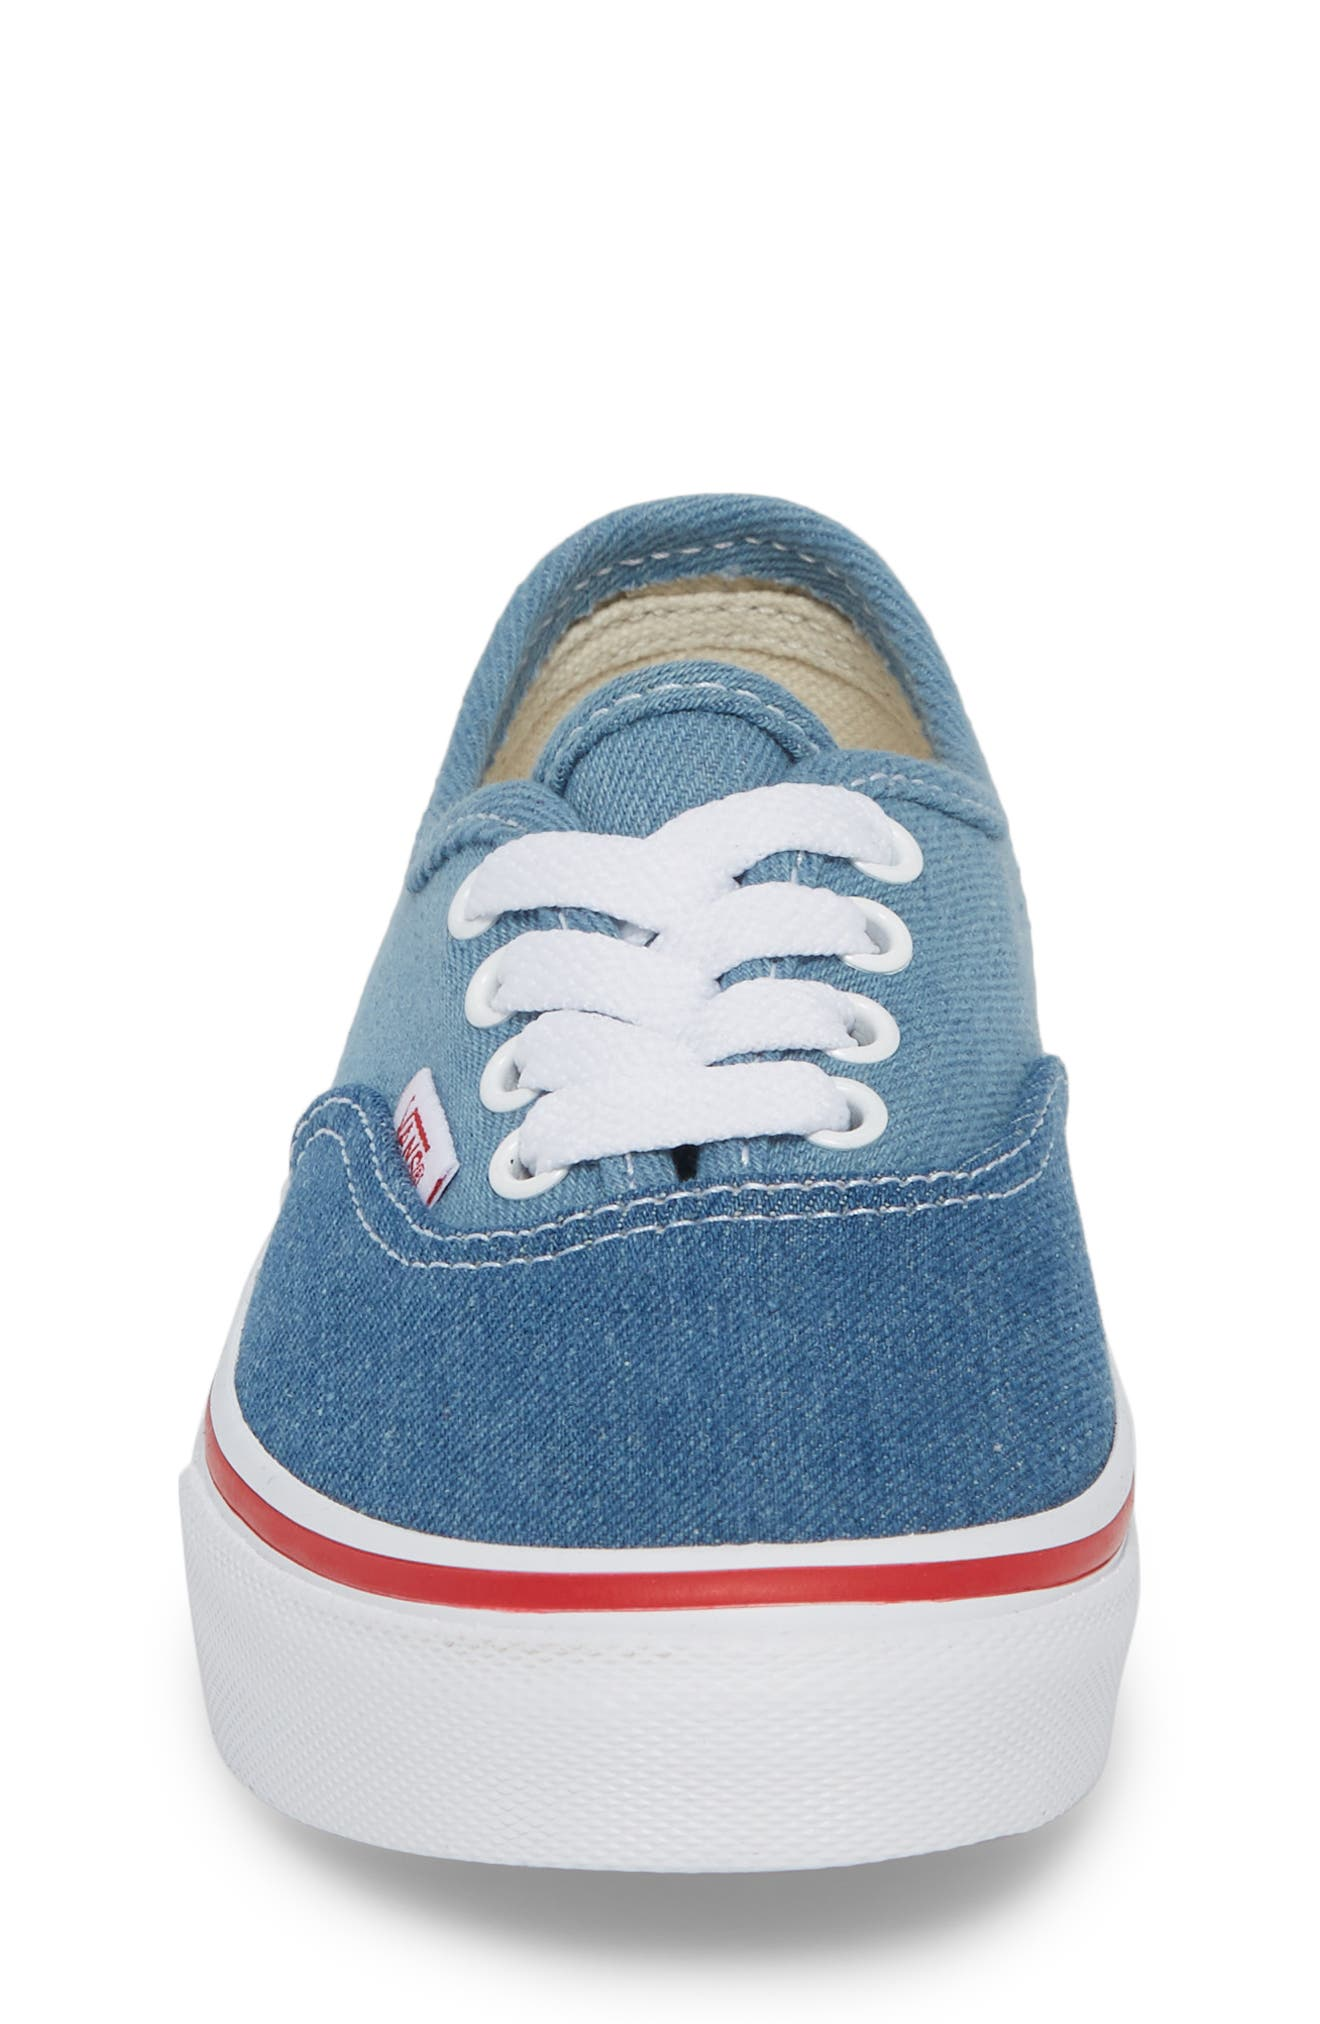 Authentic Sneaker,                             Alternate thumbnail 4, color,                             Blue/ White Denim Two-Tone